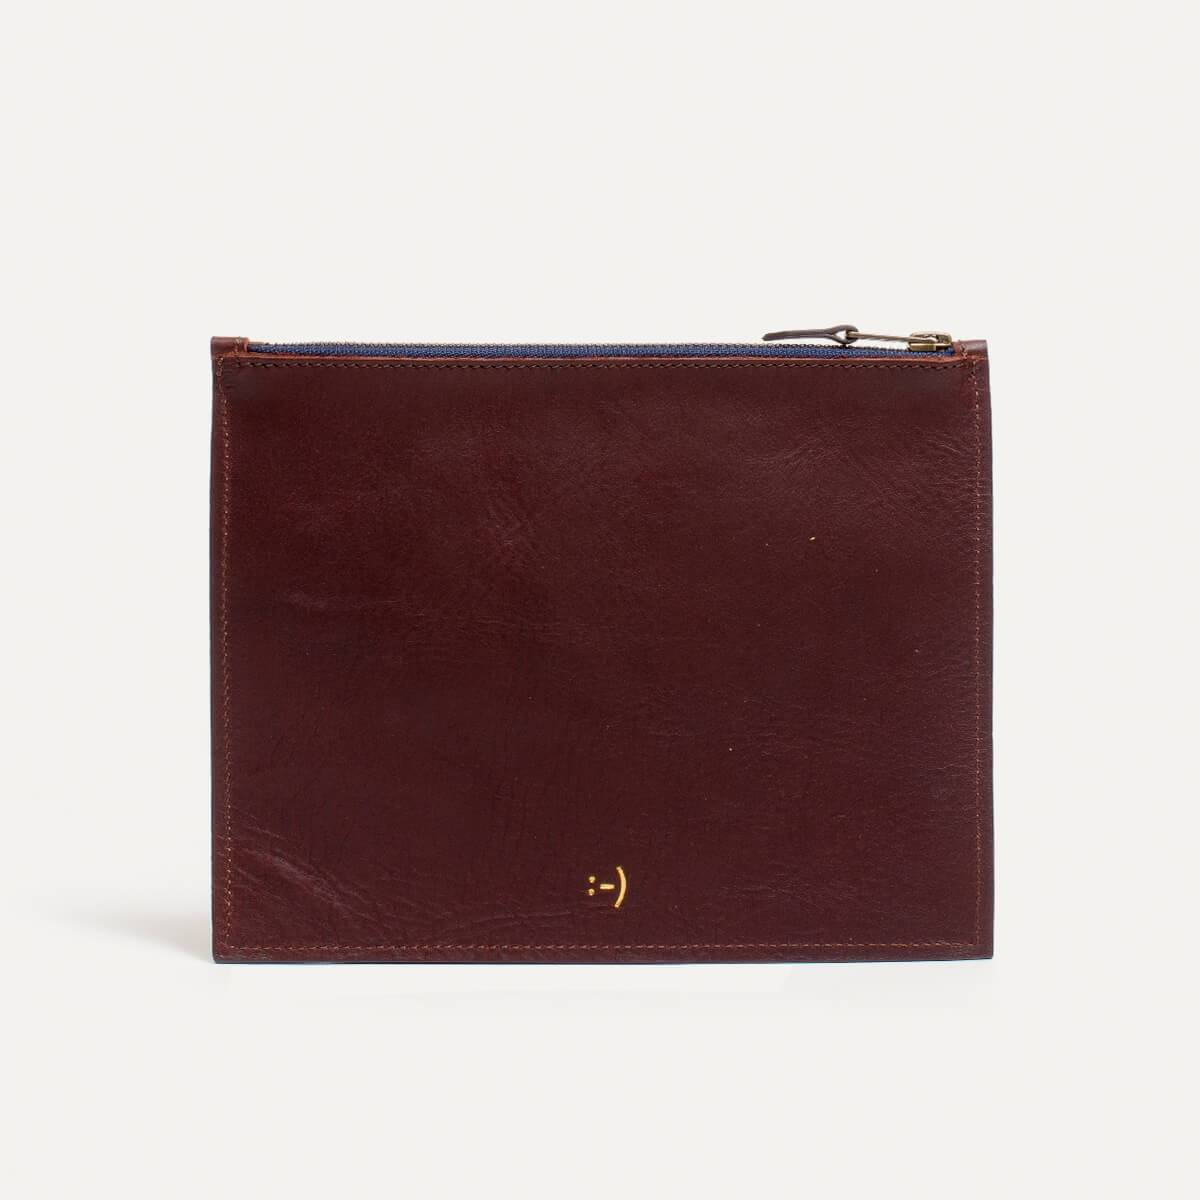 Leather Pouch COSMO M - peat (image n°1)